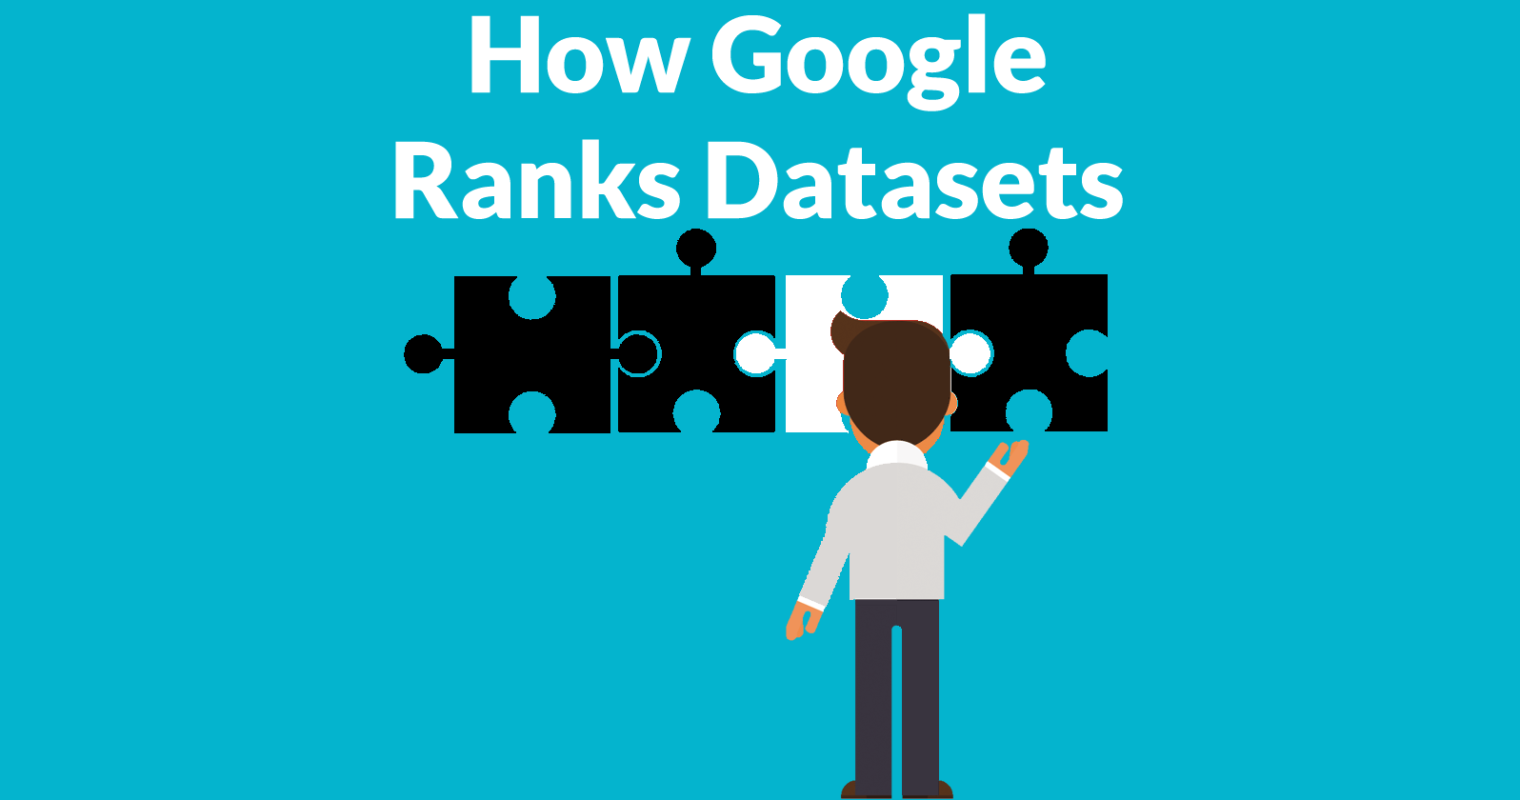 How to Rank in Google Dataset Search